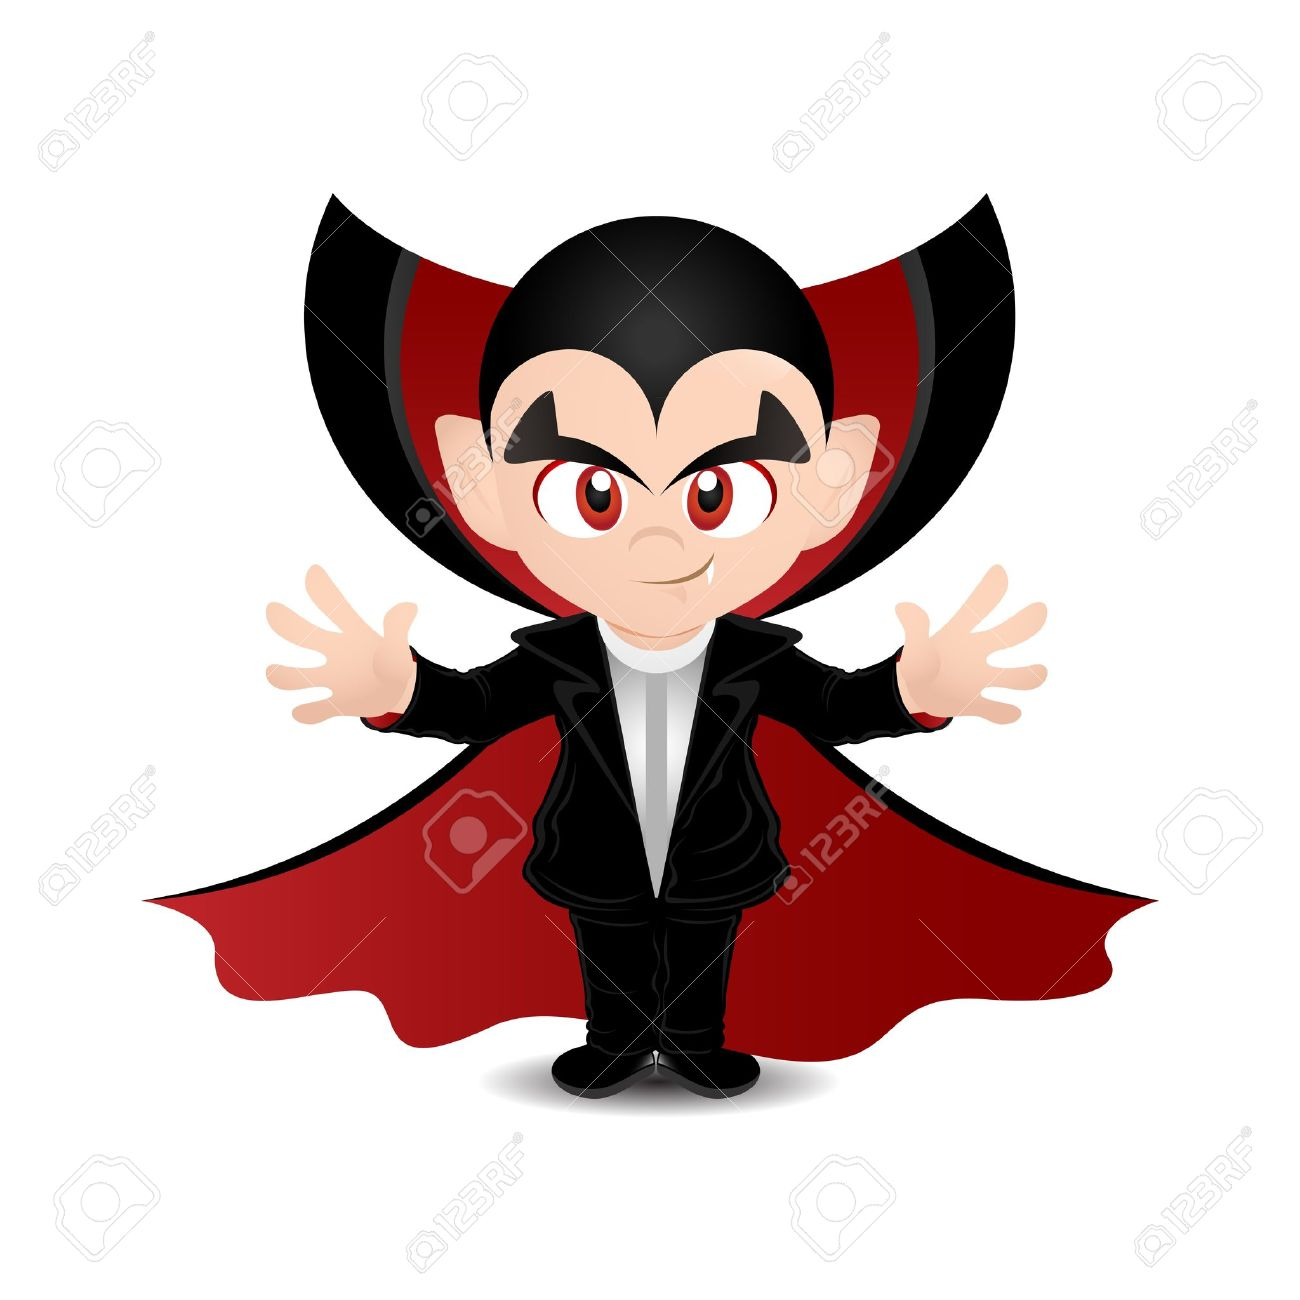 picture free Halloween vampire free download. Vampir clipart vector